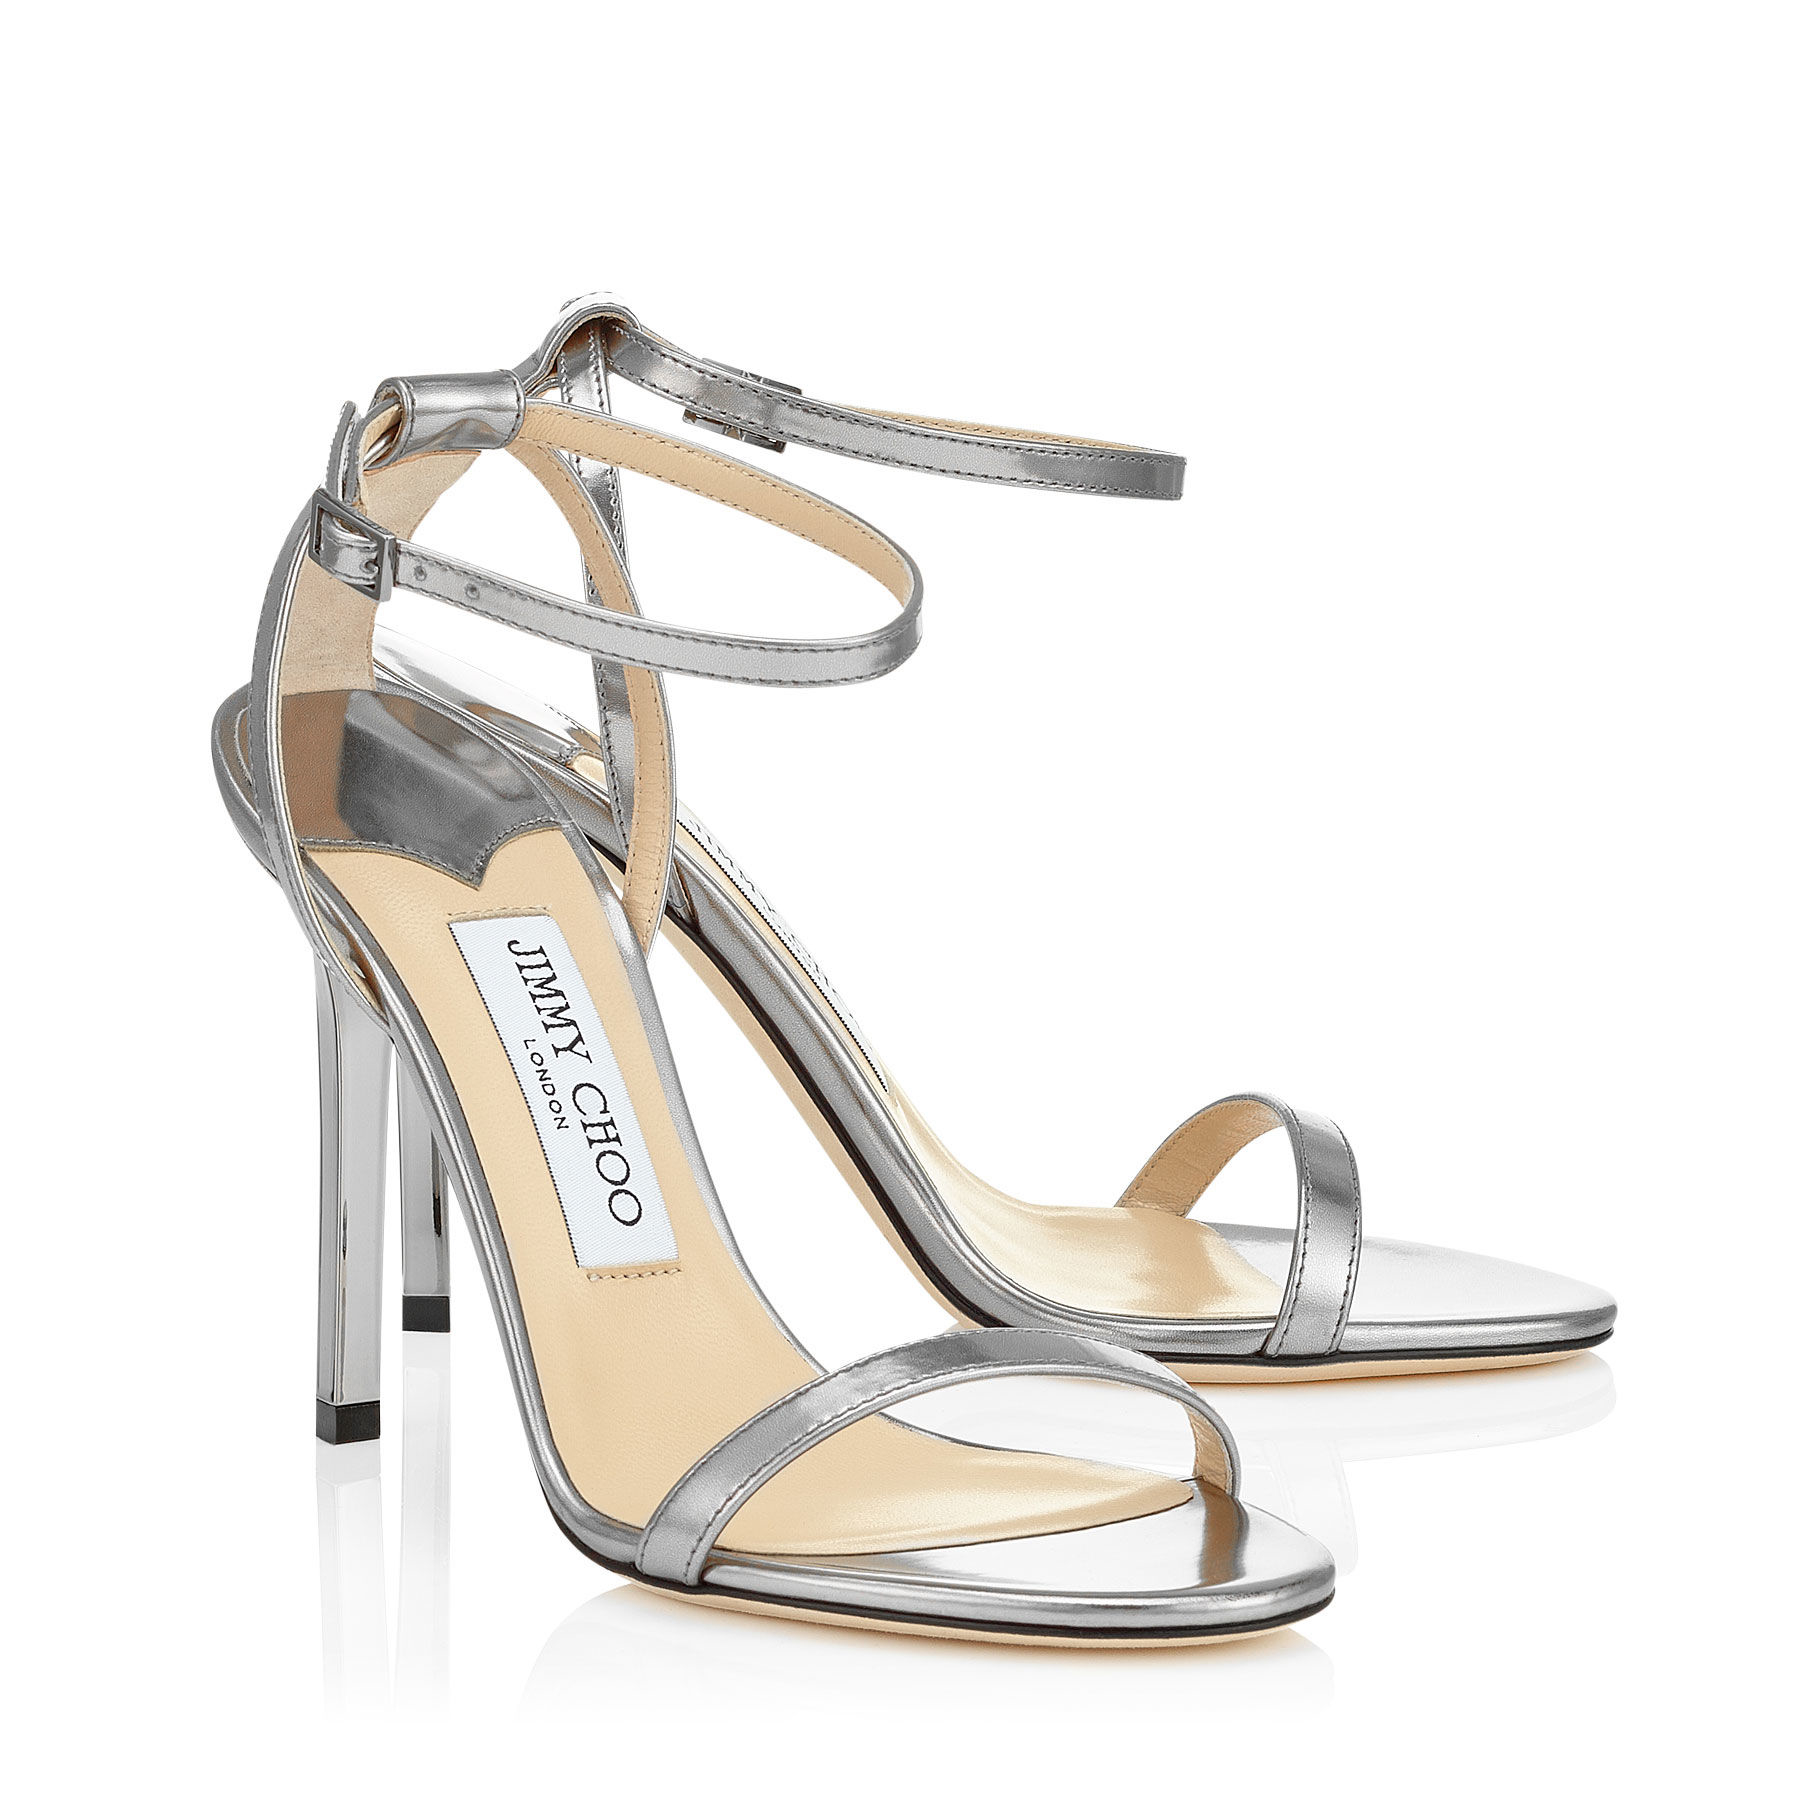 ab192c486754 ... shopping lyst jimmy choo minny 100 steel mirror leather sandals in  metallic e5551 cc045